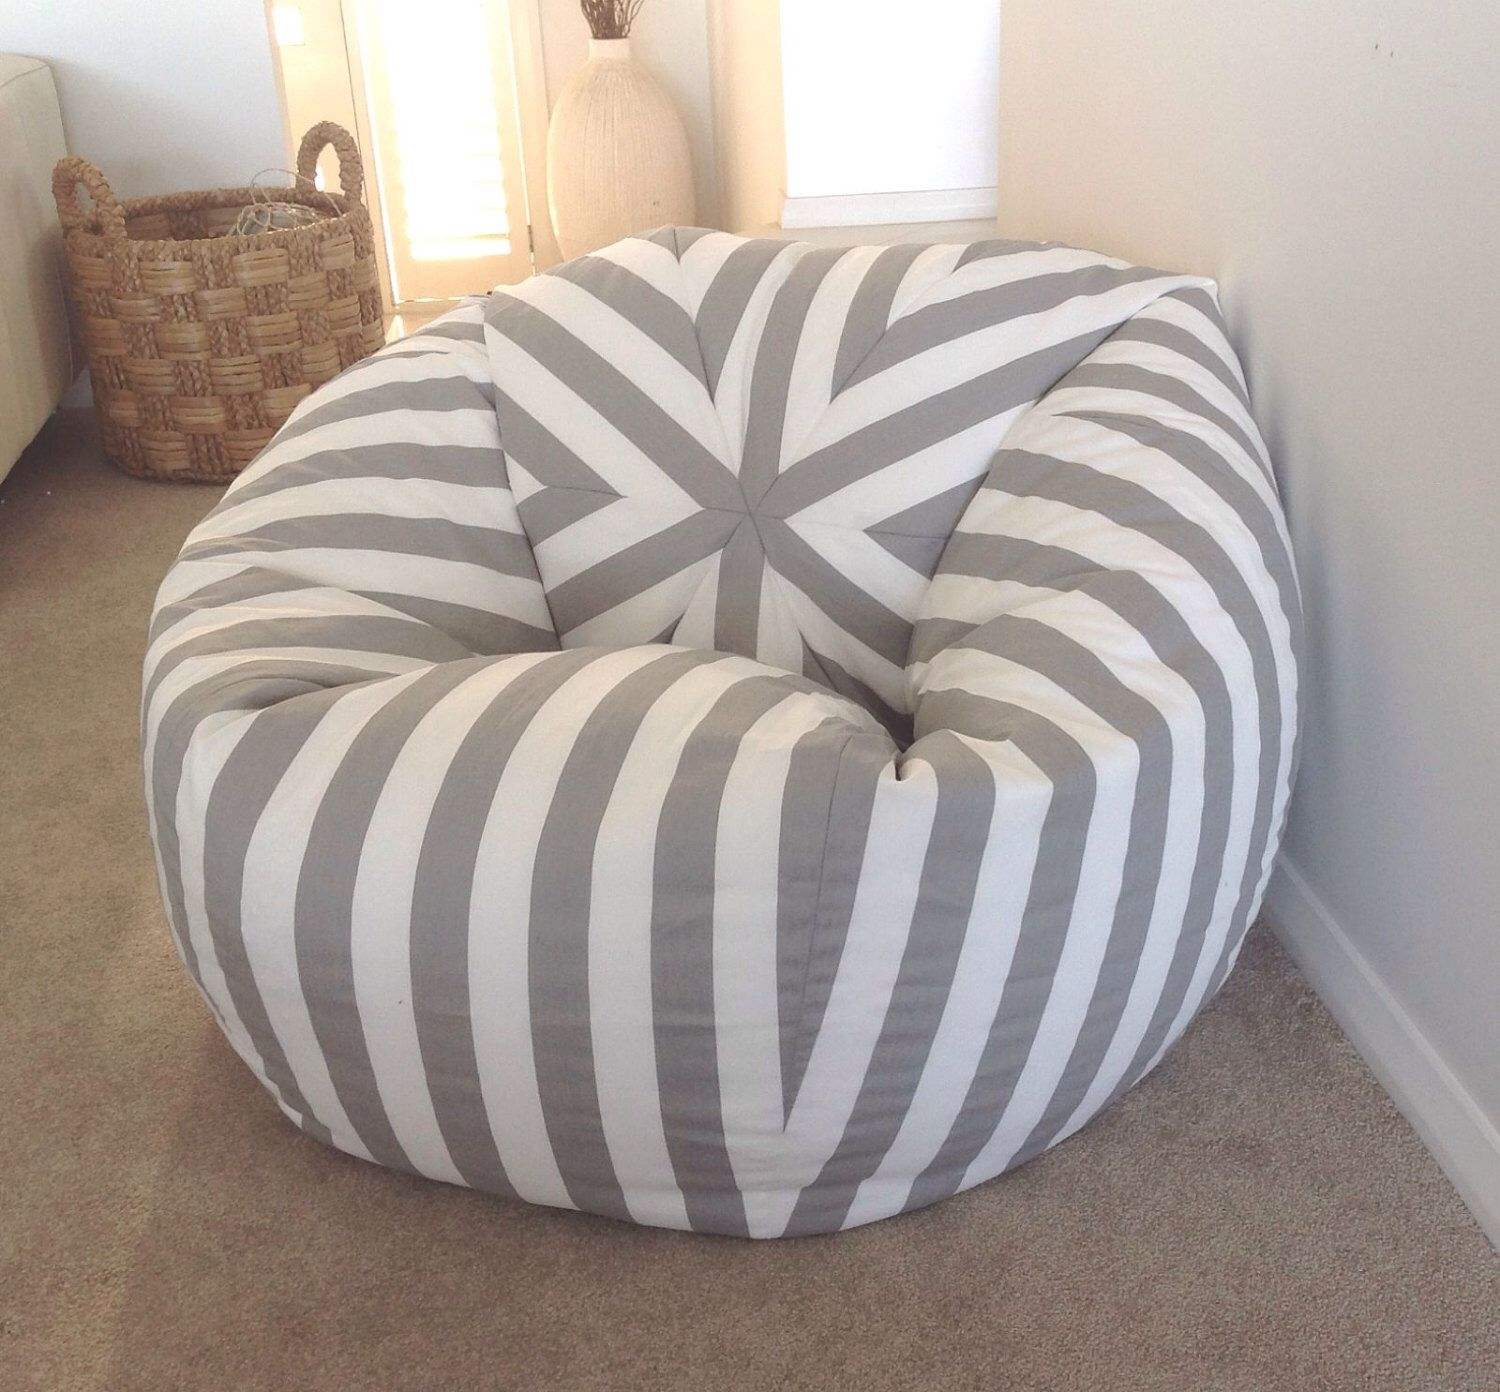 Bean bag chairs for teenage girls - Bean Bag Canopy Stripe Grey And White Stripes Bean Bag Cover Bean Bag Kids Bean Bags Nautical Navy Blue Yellow Grey Black Pink Red Teal